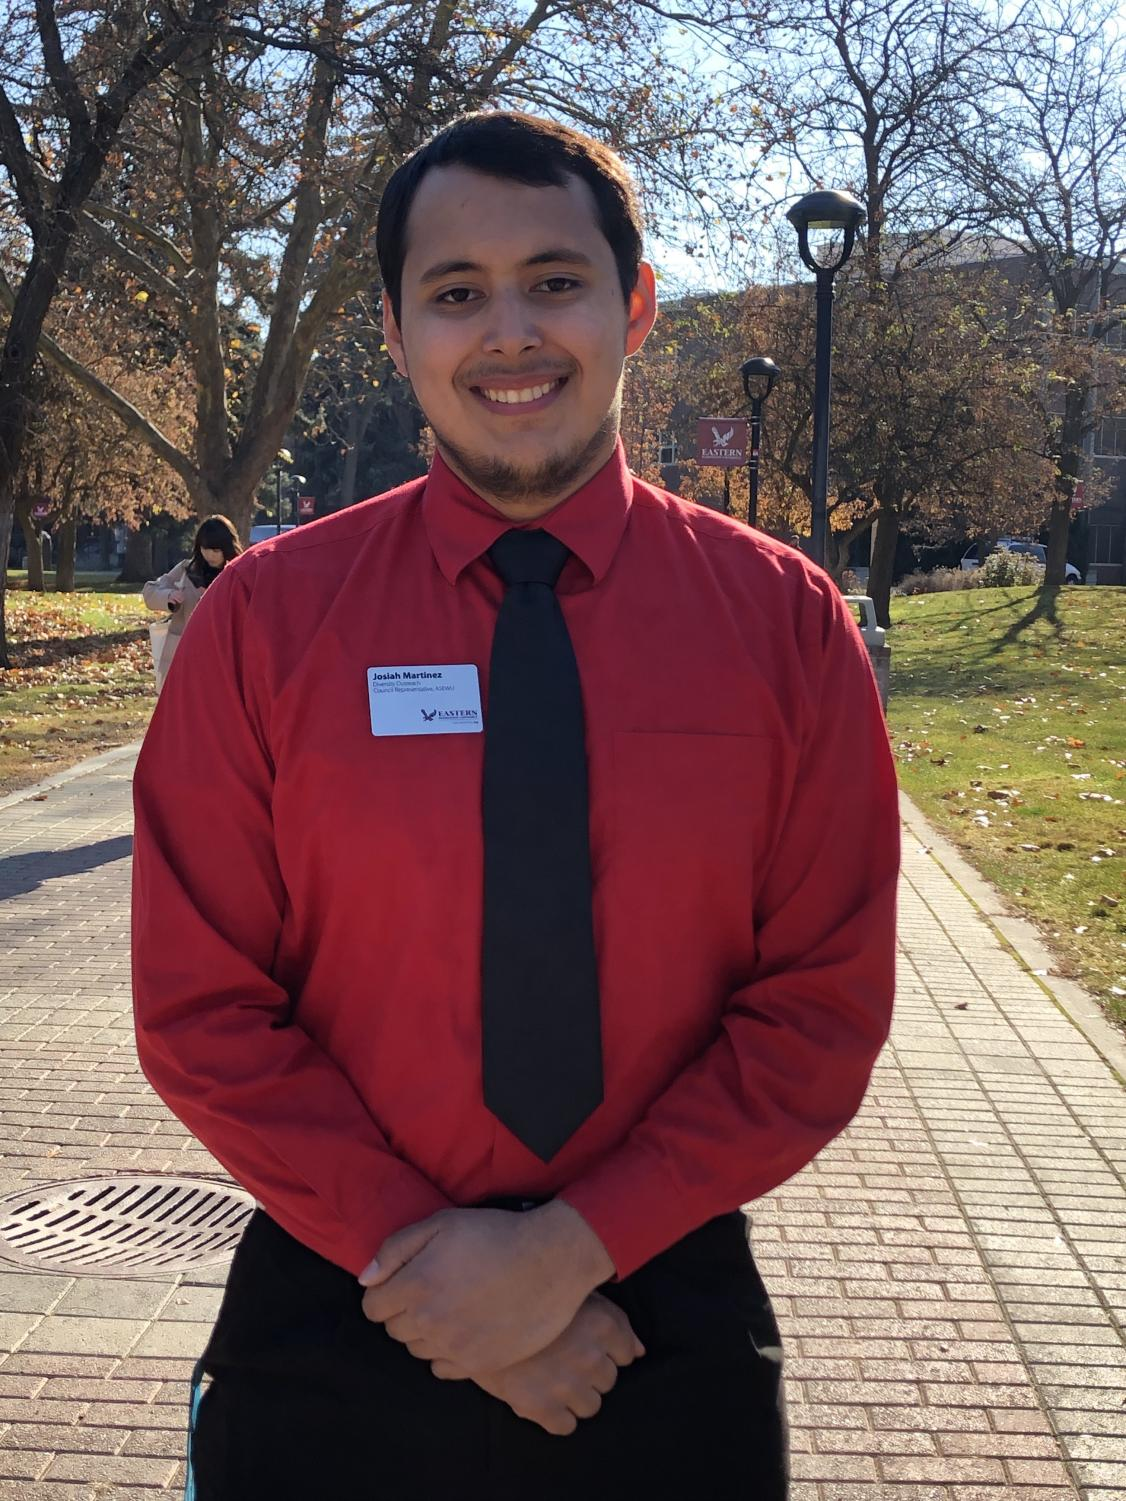 Josiah Martinez, ASEWU Diversity Outreach Council representative, planned and organized the Unity Day event. Clubs and organizations from around campus participated in Unity Day.